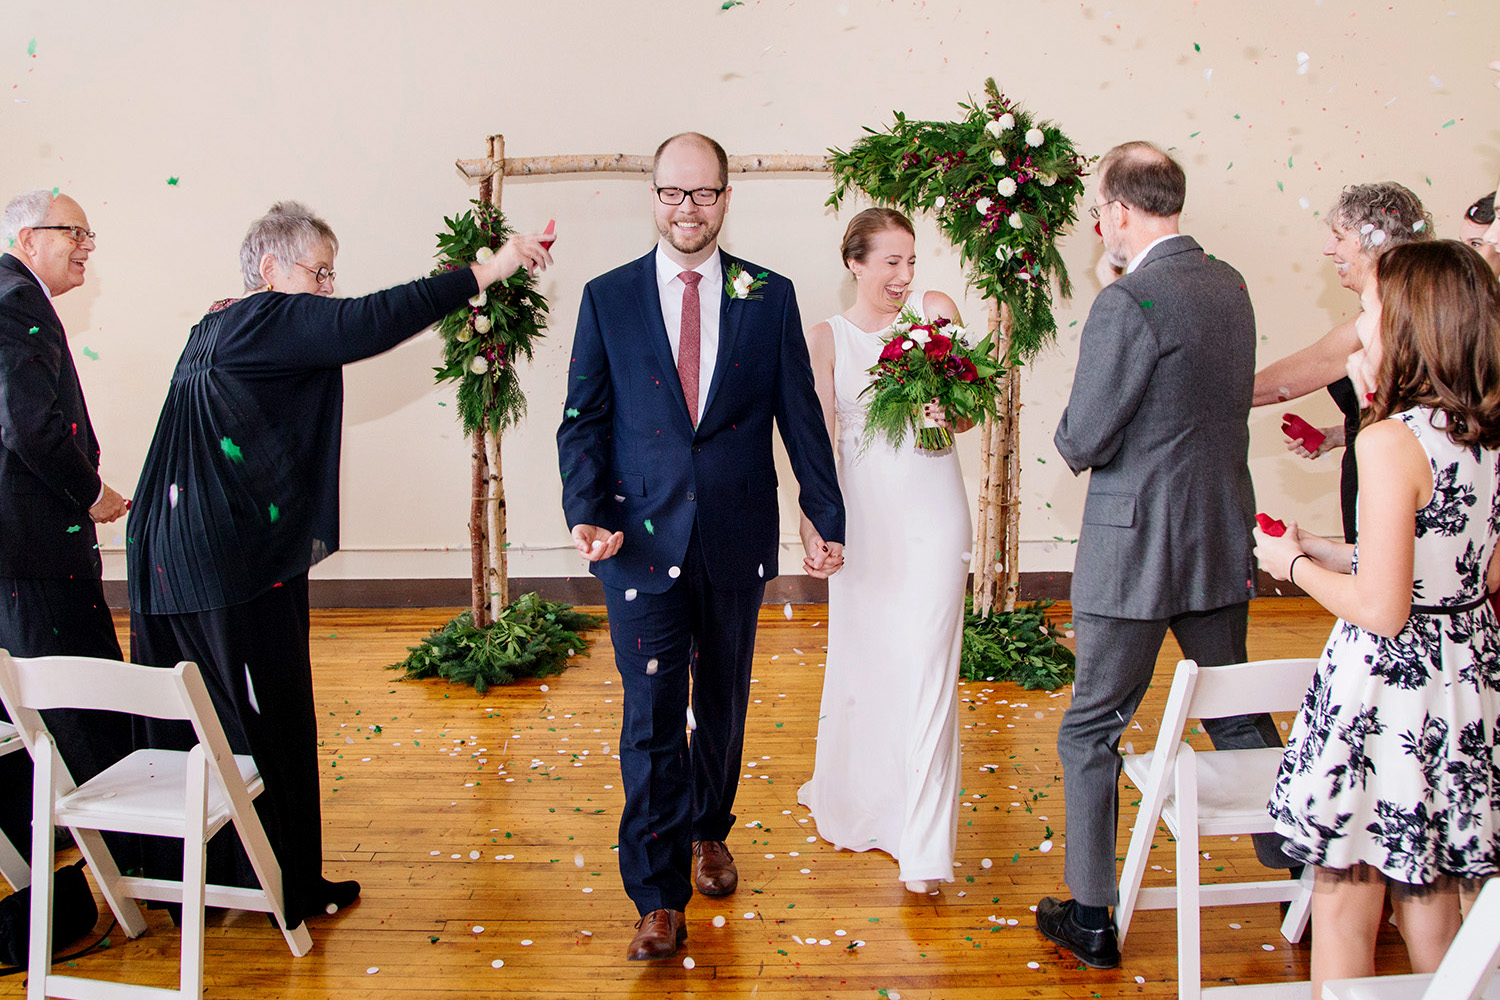 GROUP ELOPEMENT - CUPCAKES & CHAMPAGNEGROUP OF 24